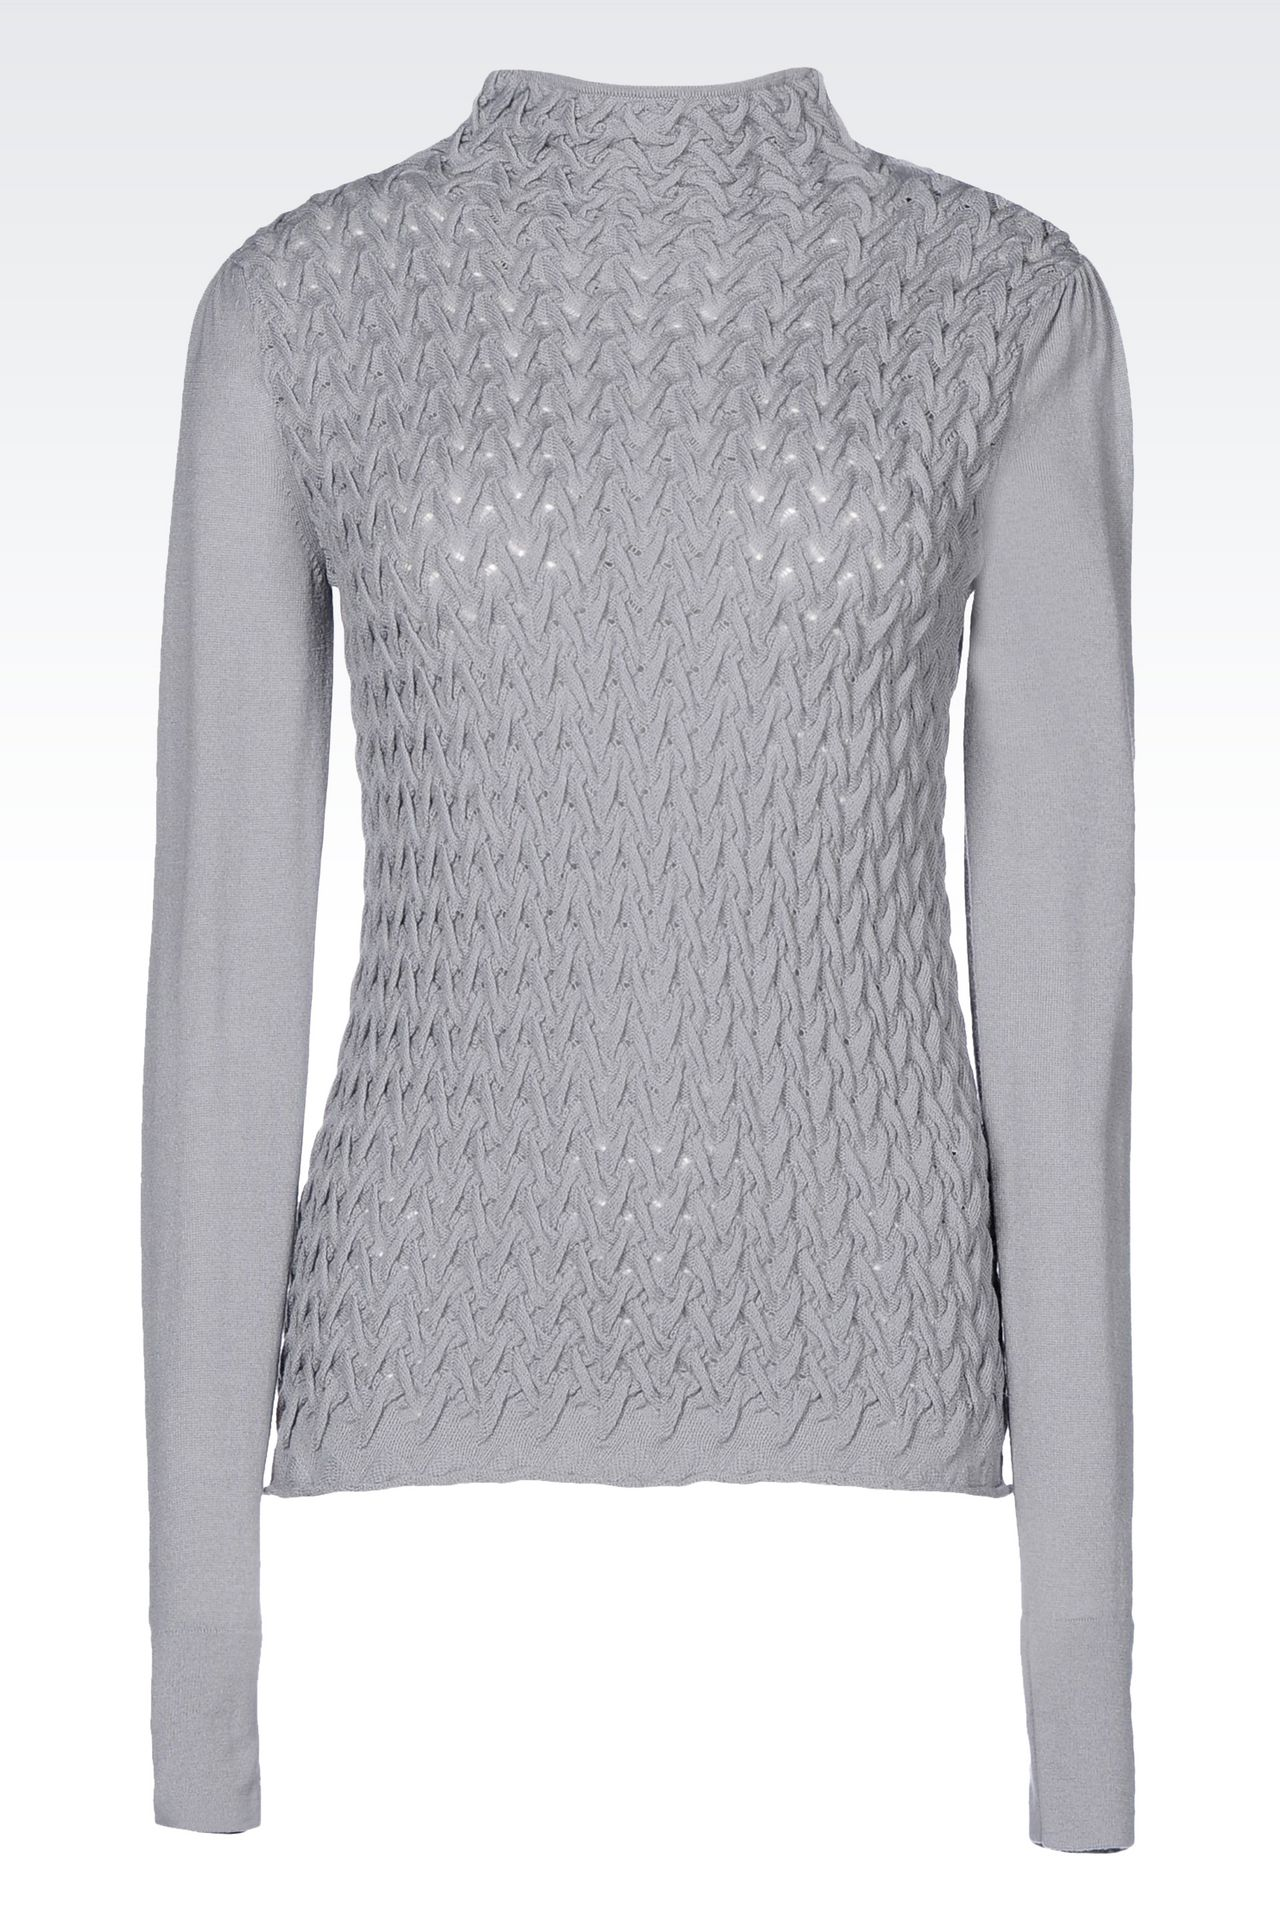 Emporio Armani Women High Neck Sweater - VIRGIN WOOL JUMPER WITH WOVEN DESIGN Emporio Armani Official Online Store